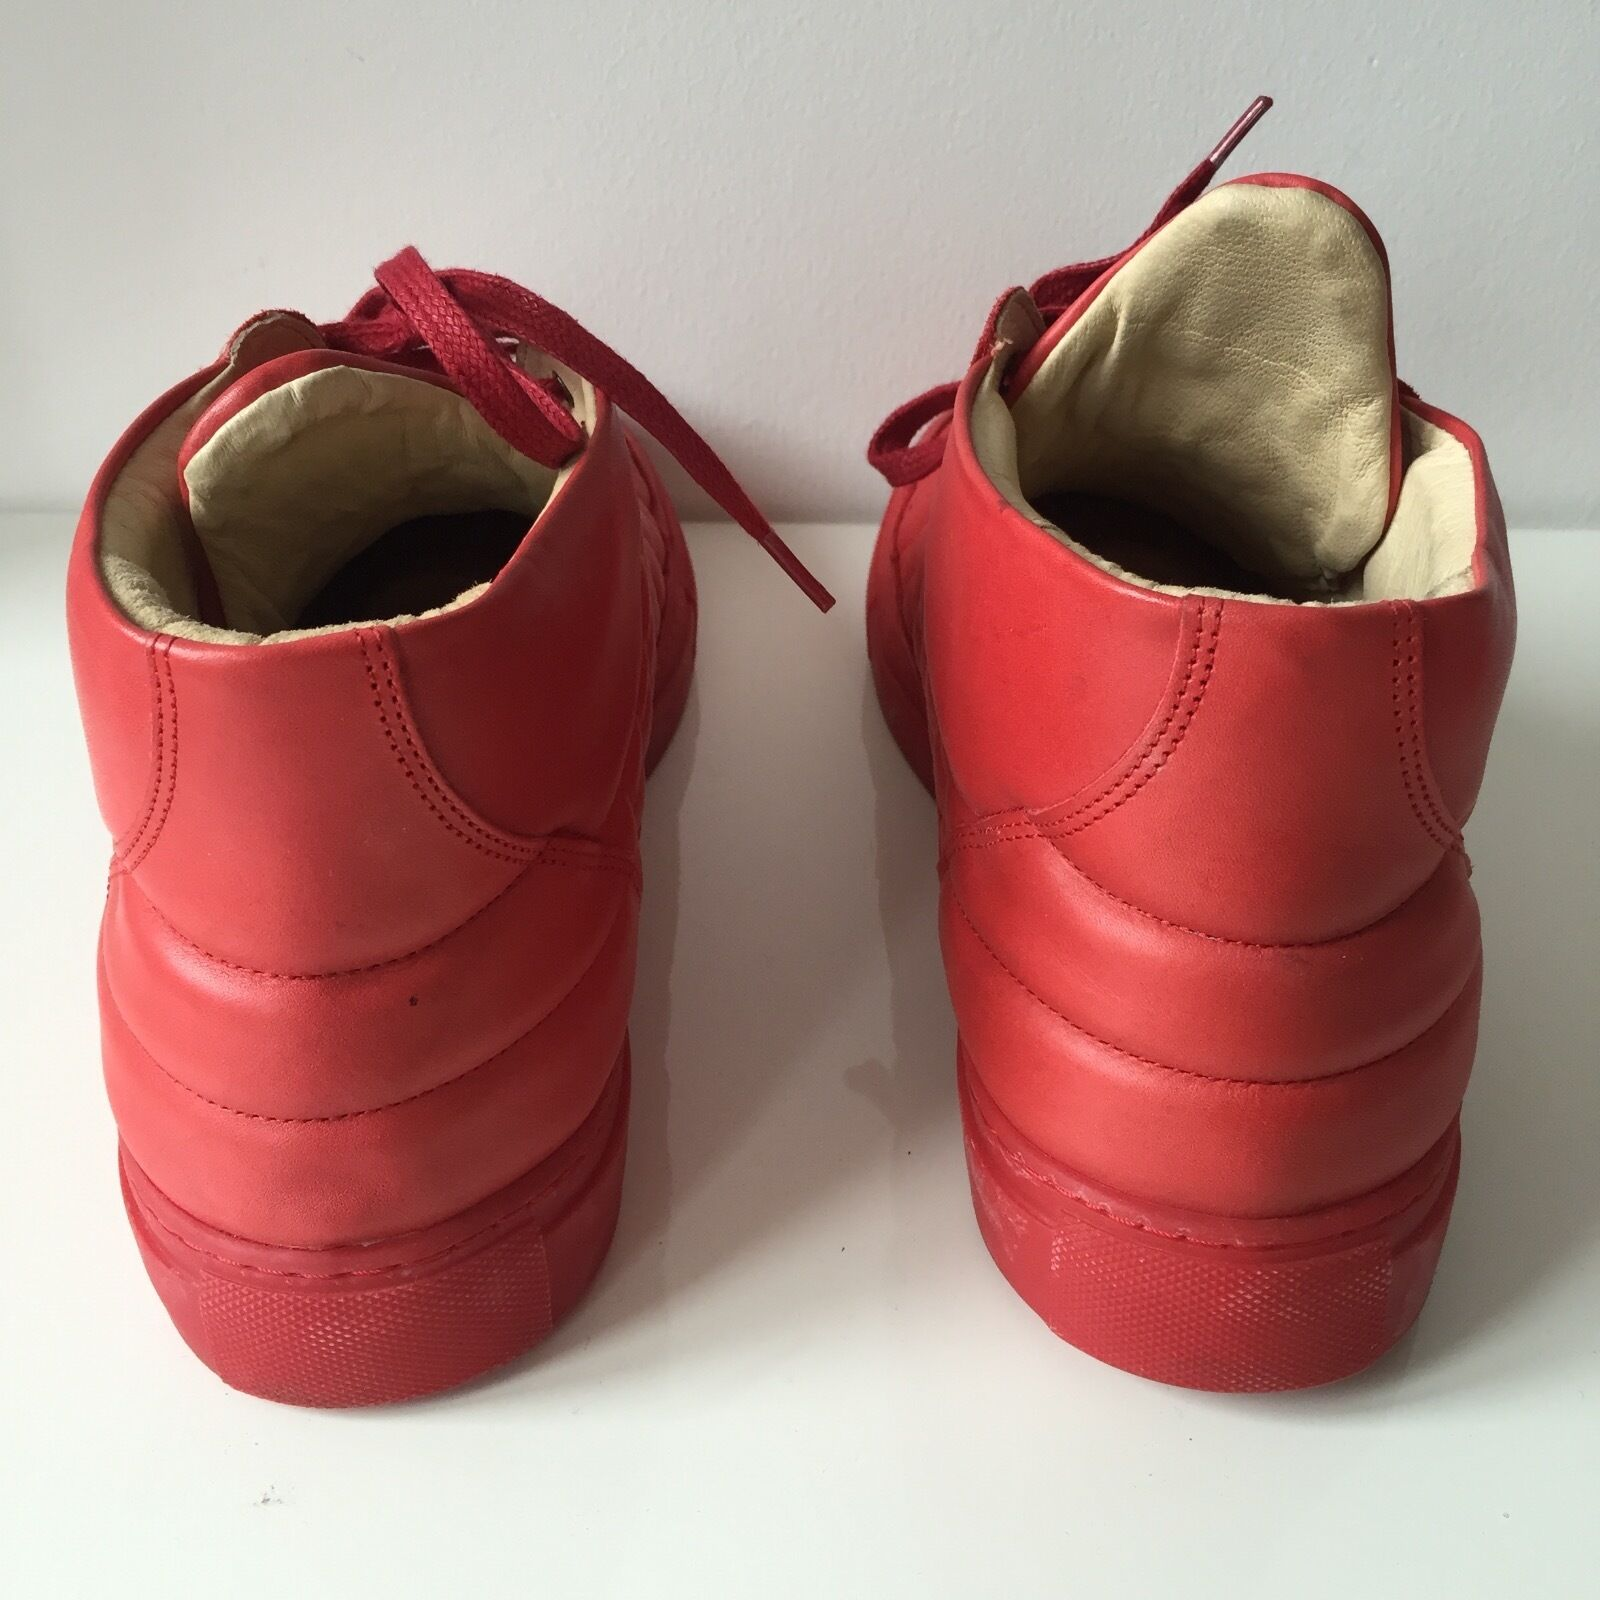 Ronnie Fieg x Filling Pieces Quilted RF-Mid (ROT): 45 US 11.5 | EU 45 (ROT): 31e776